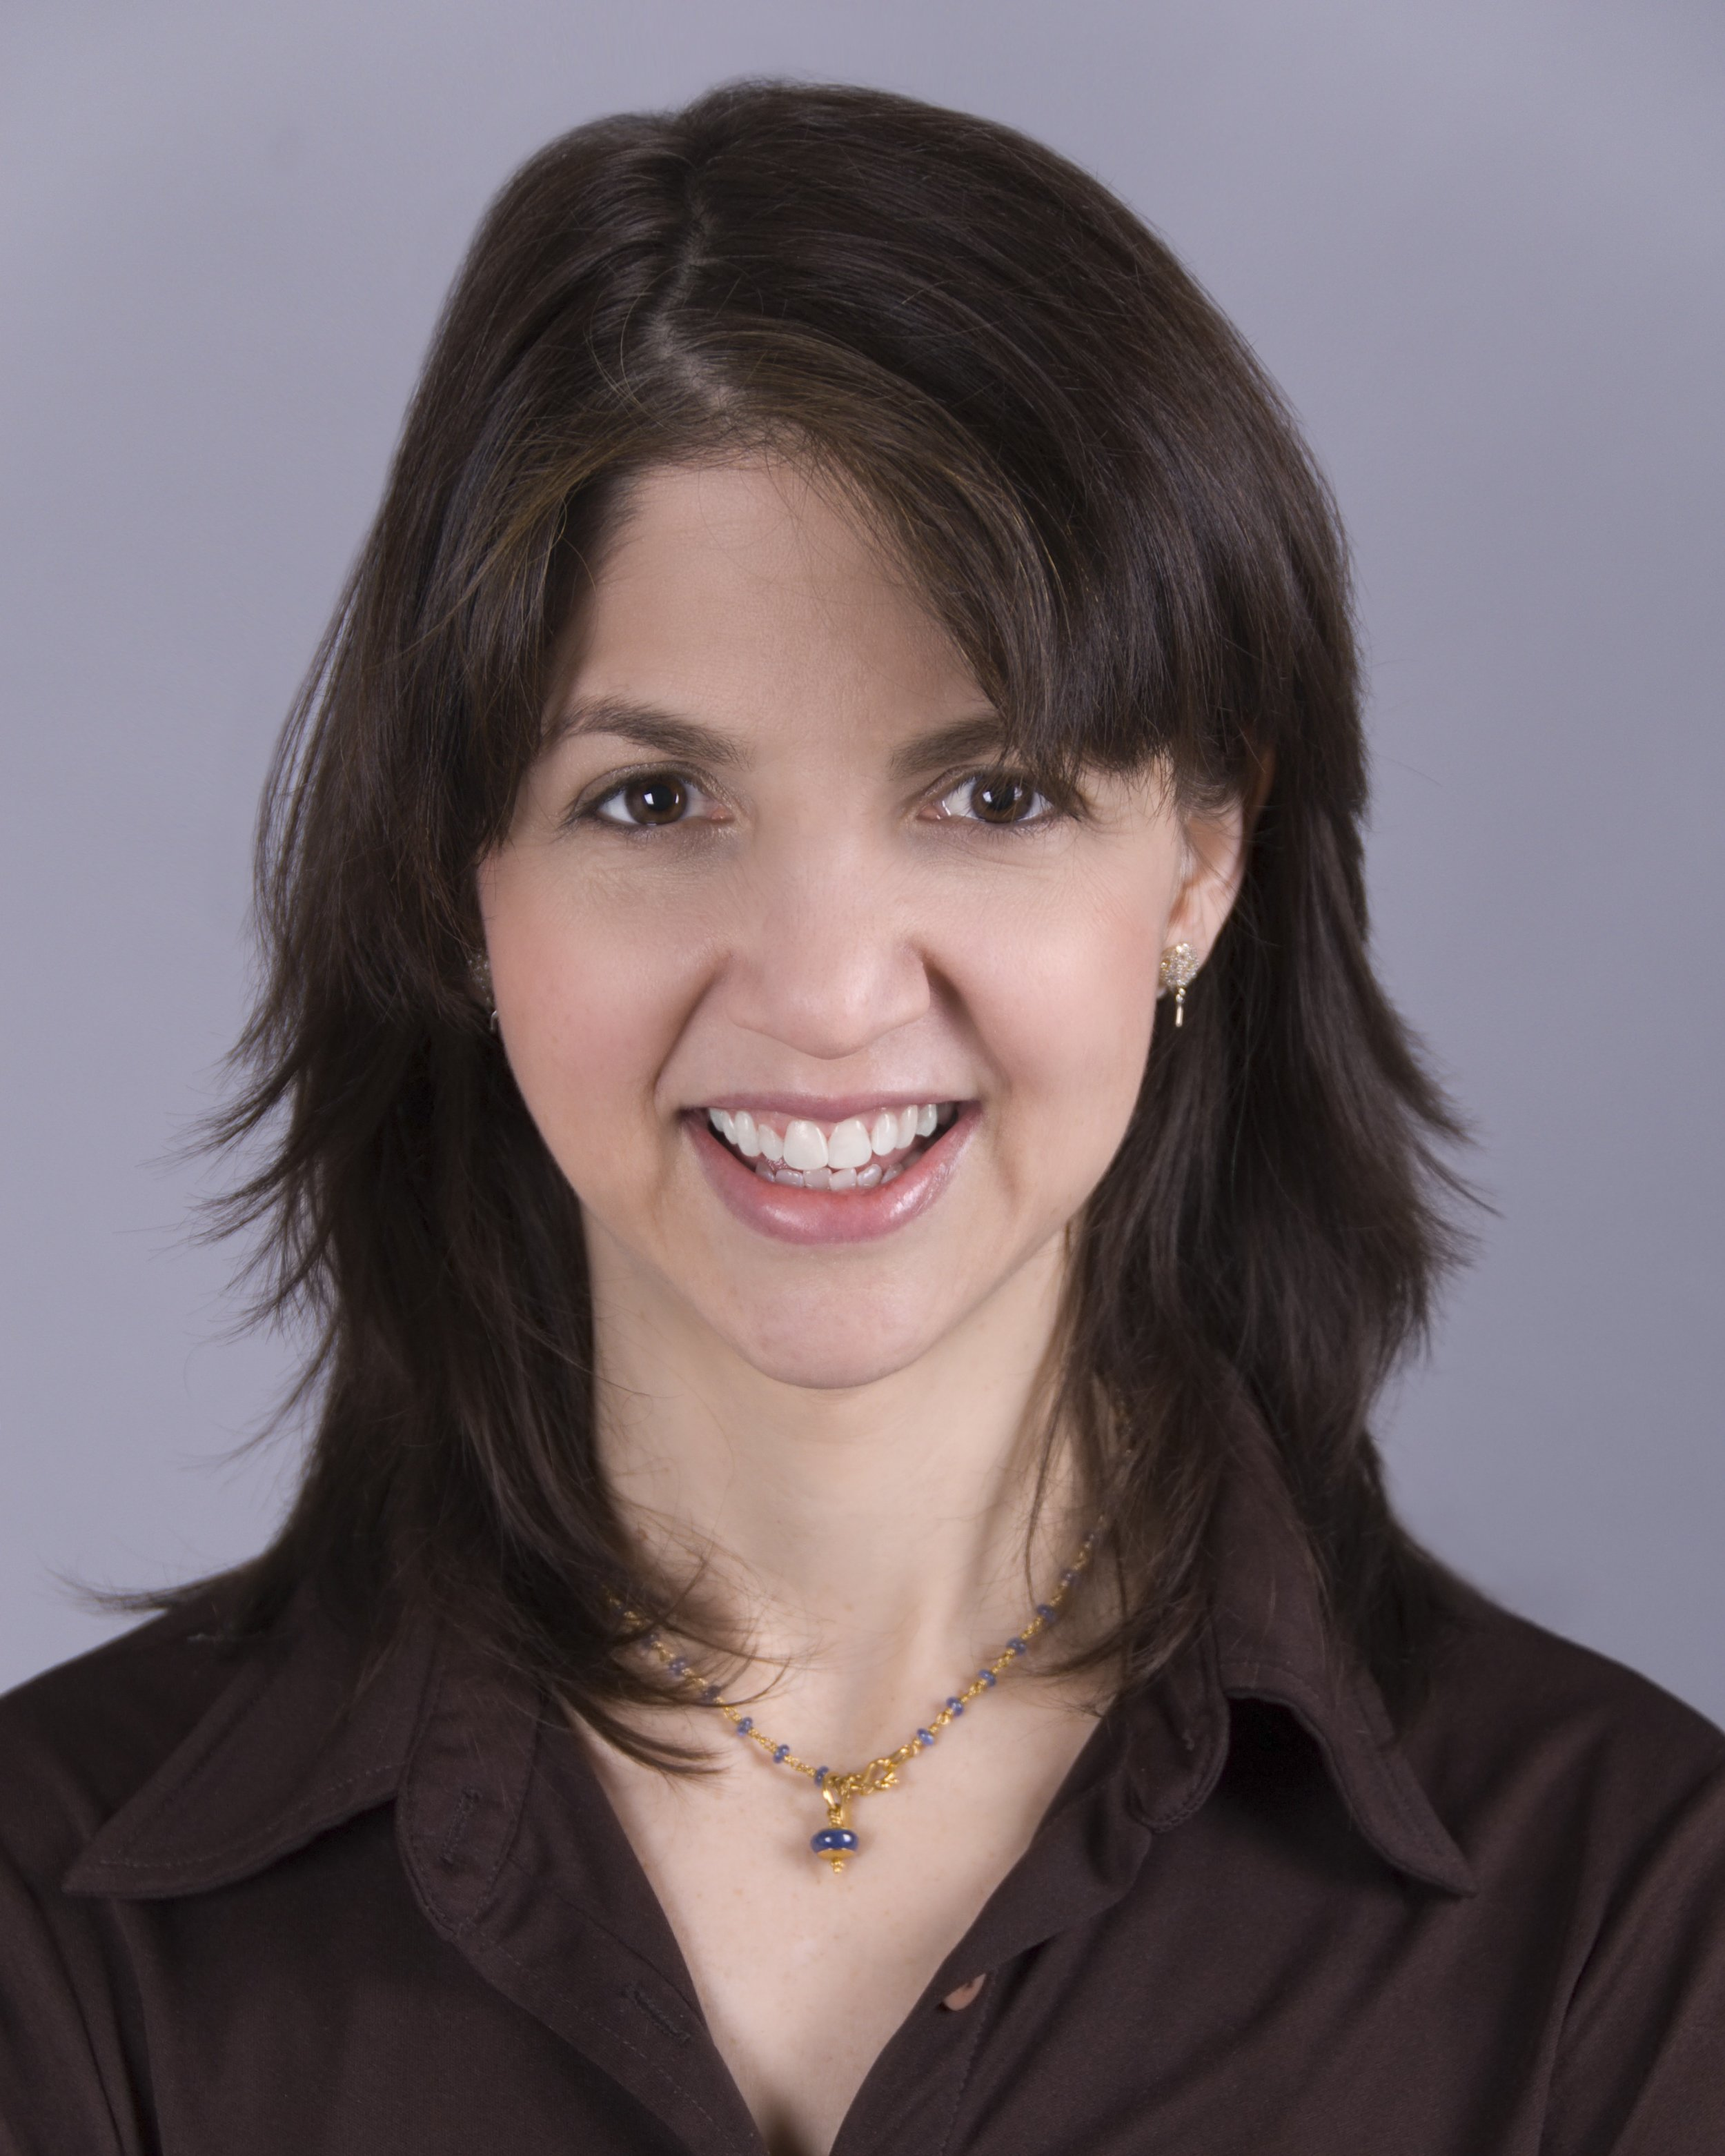 ABOUT KAREN - Karen Bergreen has been teaching stand-up for over ten years. Karen, a nationally recognized stand-up comic, has made several appearances in both seasons of The Jim Gaffigan Show.She has appeared on The View, Comedy Central, Nick Moms, the Oxygen Network, The TV Guide Network, House Hunters, The Joy Behar Show, and Law & Order. Karen has been invited twice to perform at HBO's U.S. Comedy Arts Festival in Aspen, Colorado and The Great American Comedy Festival at the Johnny Carson Theatre in Norfolk, Nebraska. Karen has written two comic novels, Following Polly and Perfect is Overrated, which have earned praise from The New York Times and Oprah Magazine.